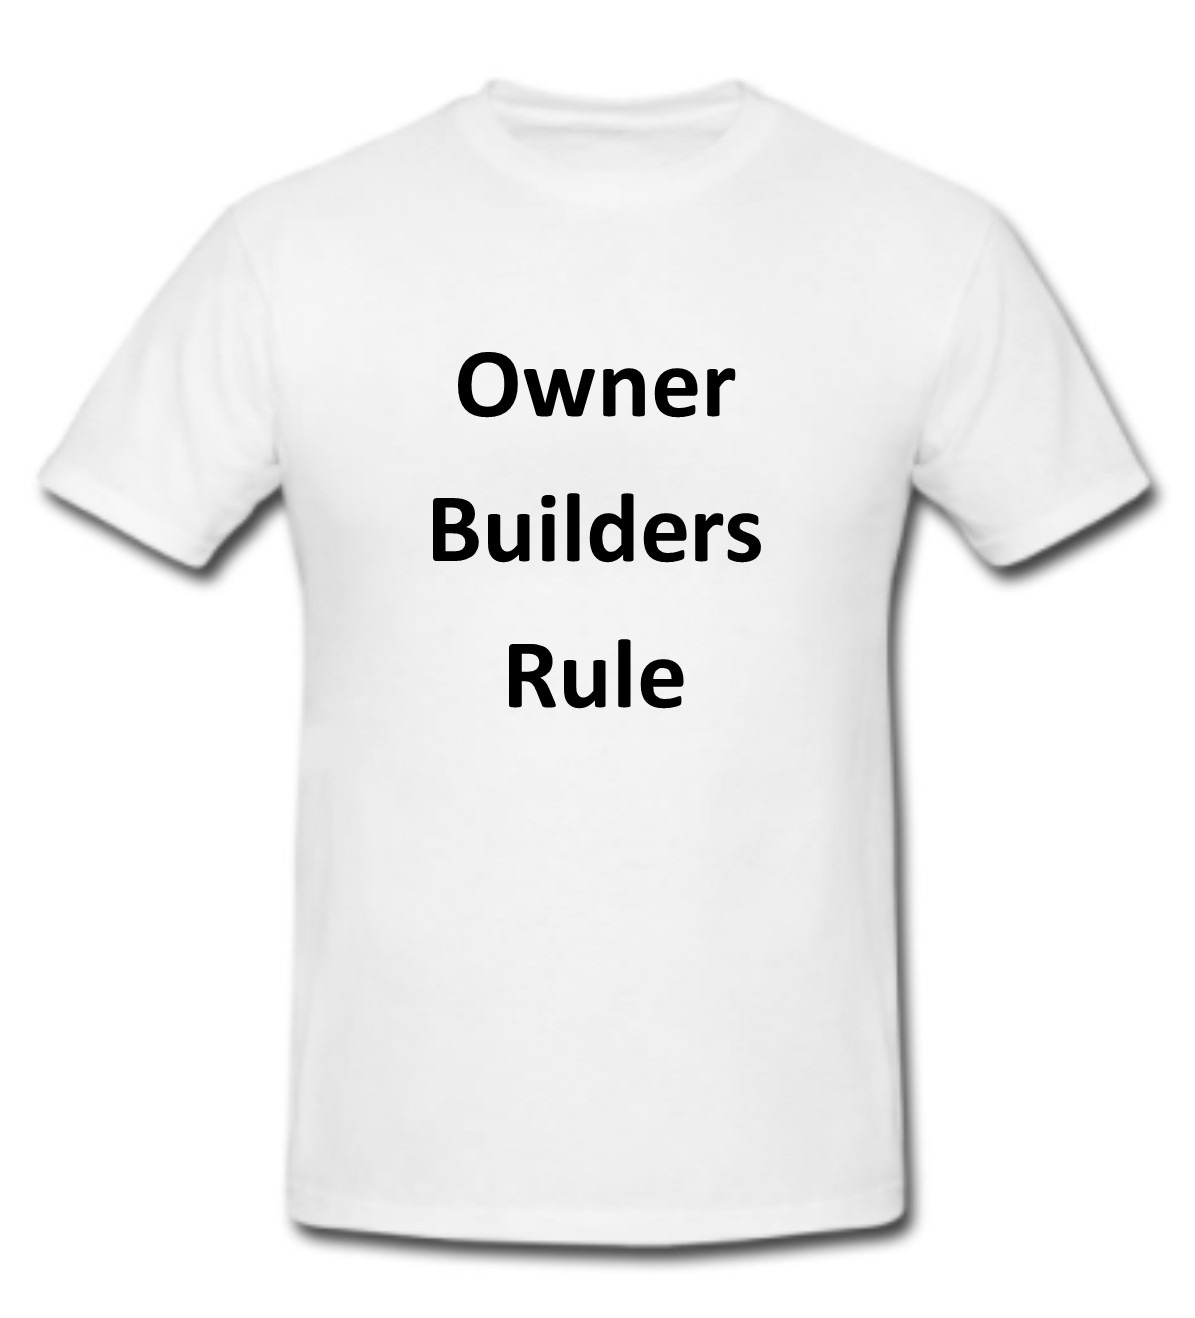 owner builder t shirt